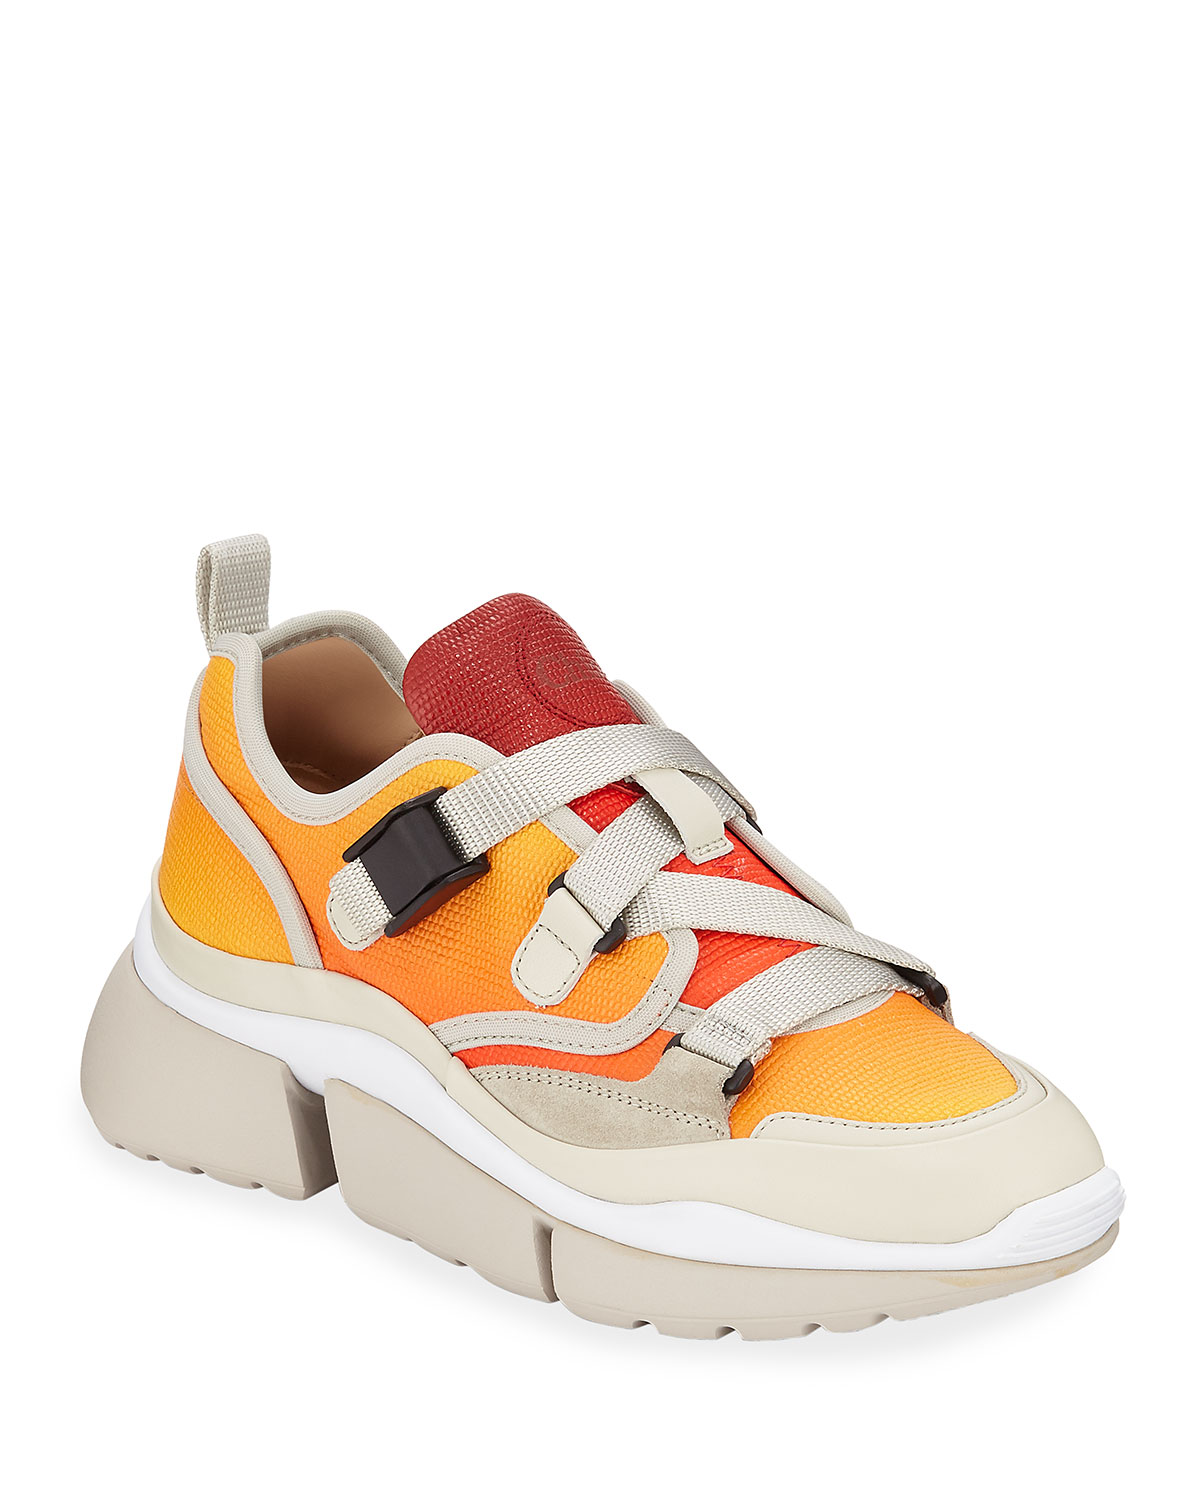 911da191e895 Chloe Sonnie Low-Top Ombre Leather Sneakers